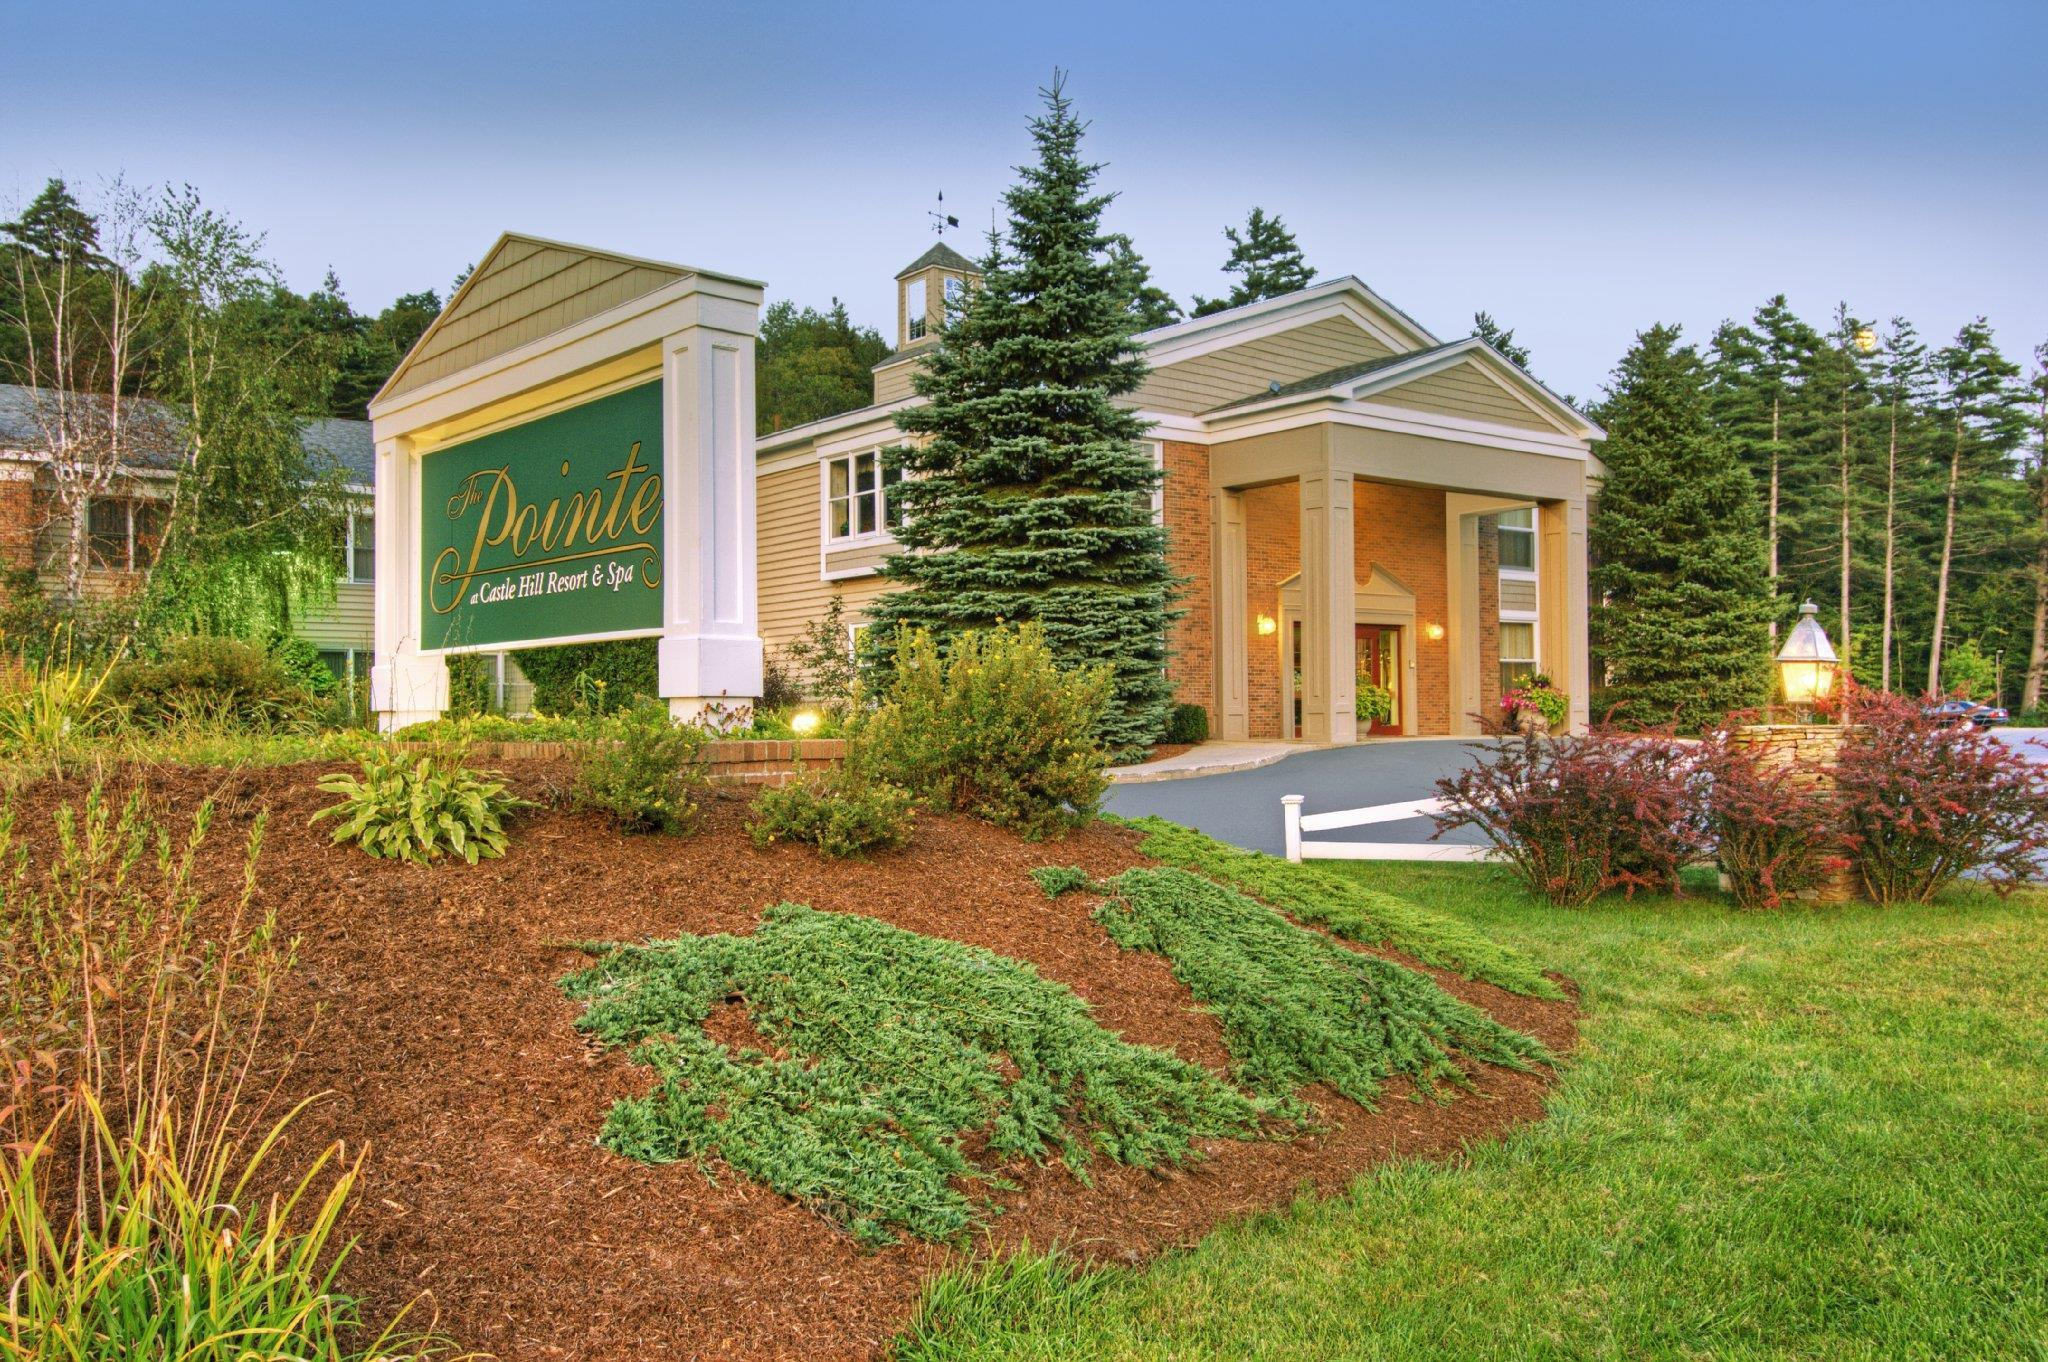 The Pointe At Castle Hill Resort And Spa